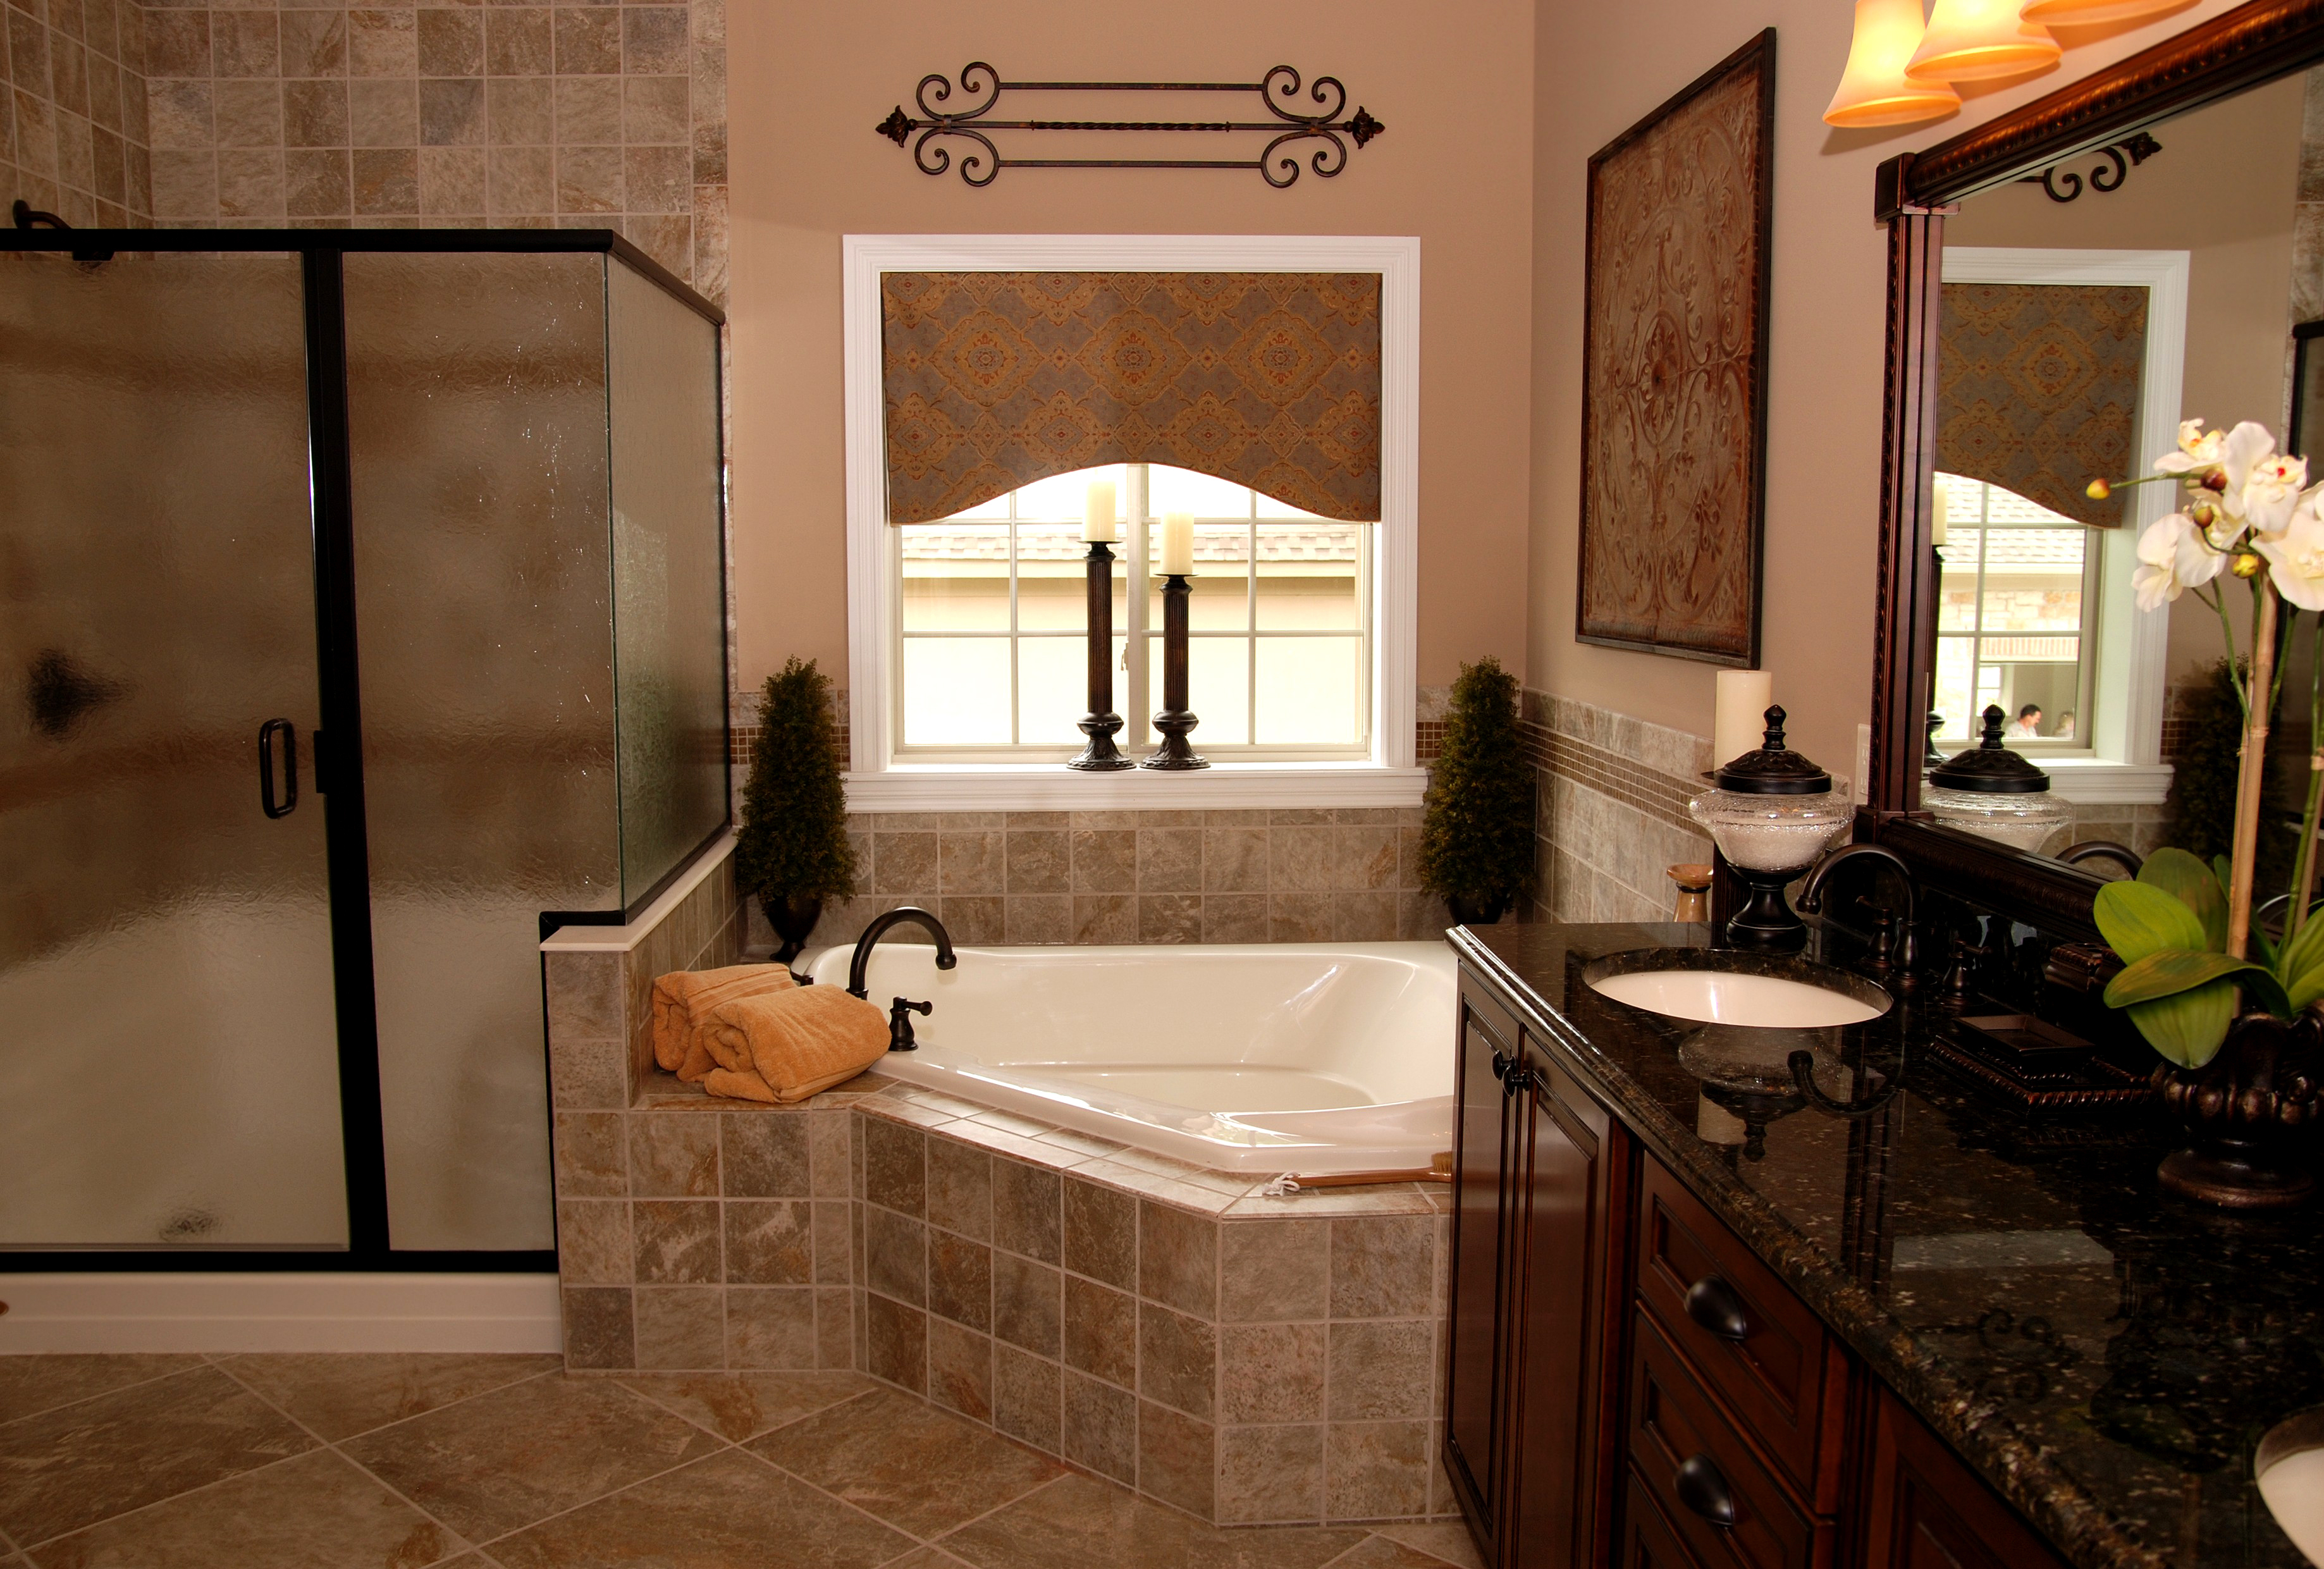 40 Wonderful Pictures And Ideas Of S Bathroom Tile Designs